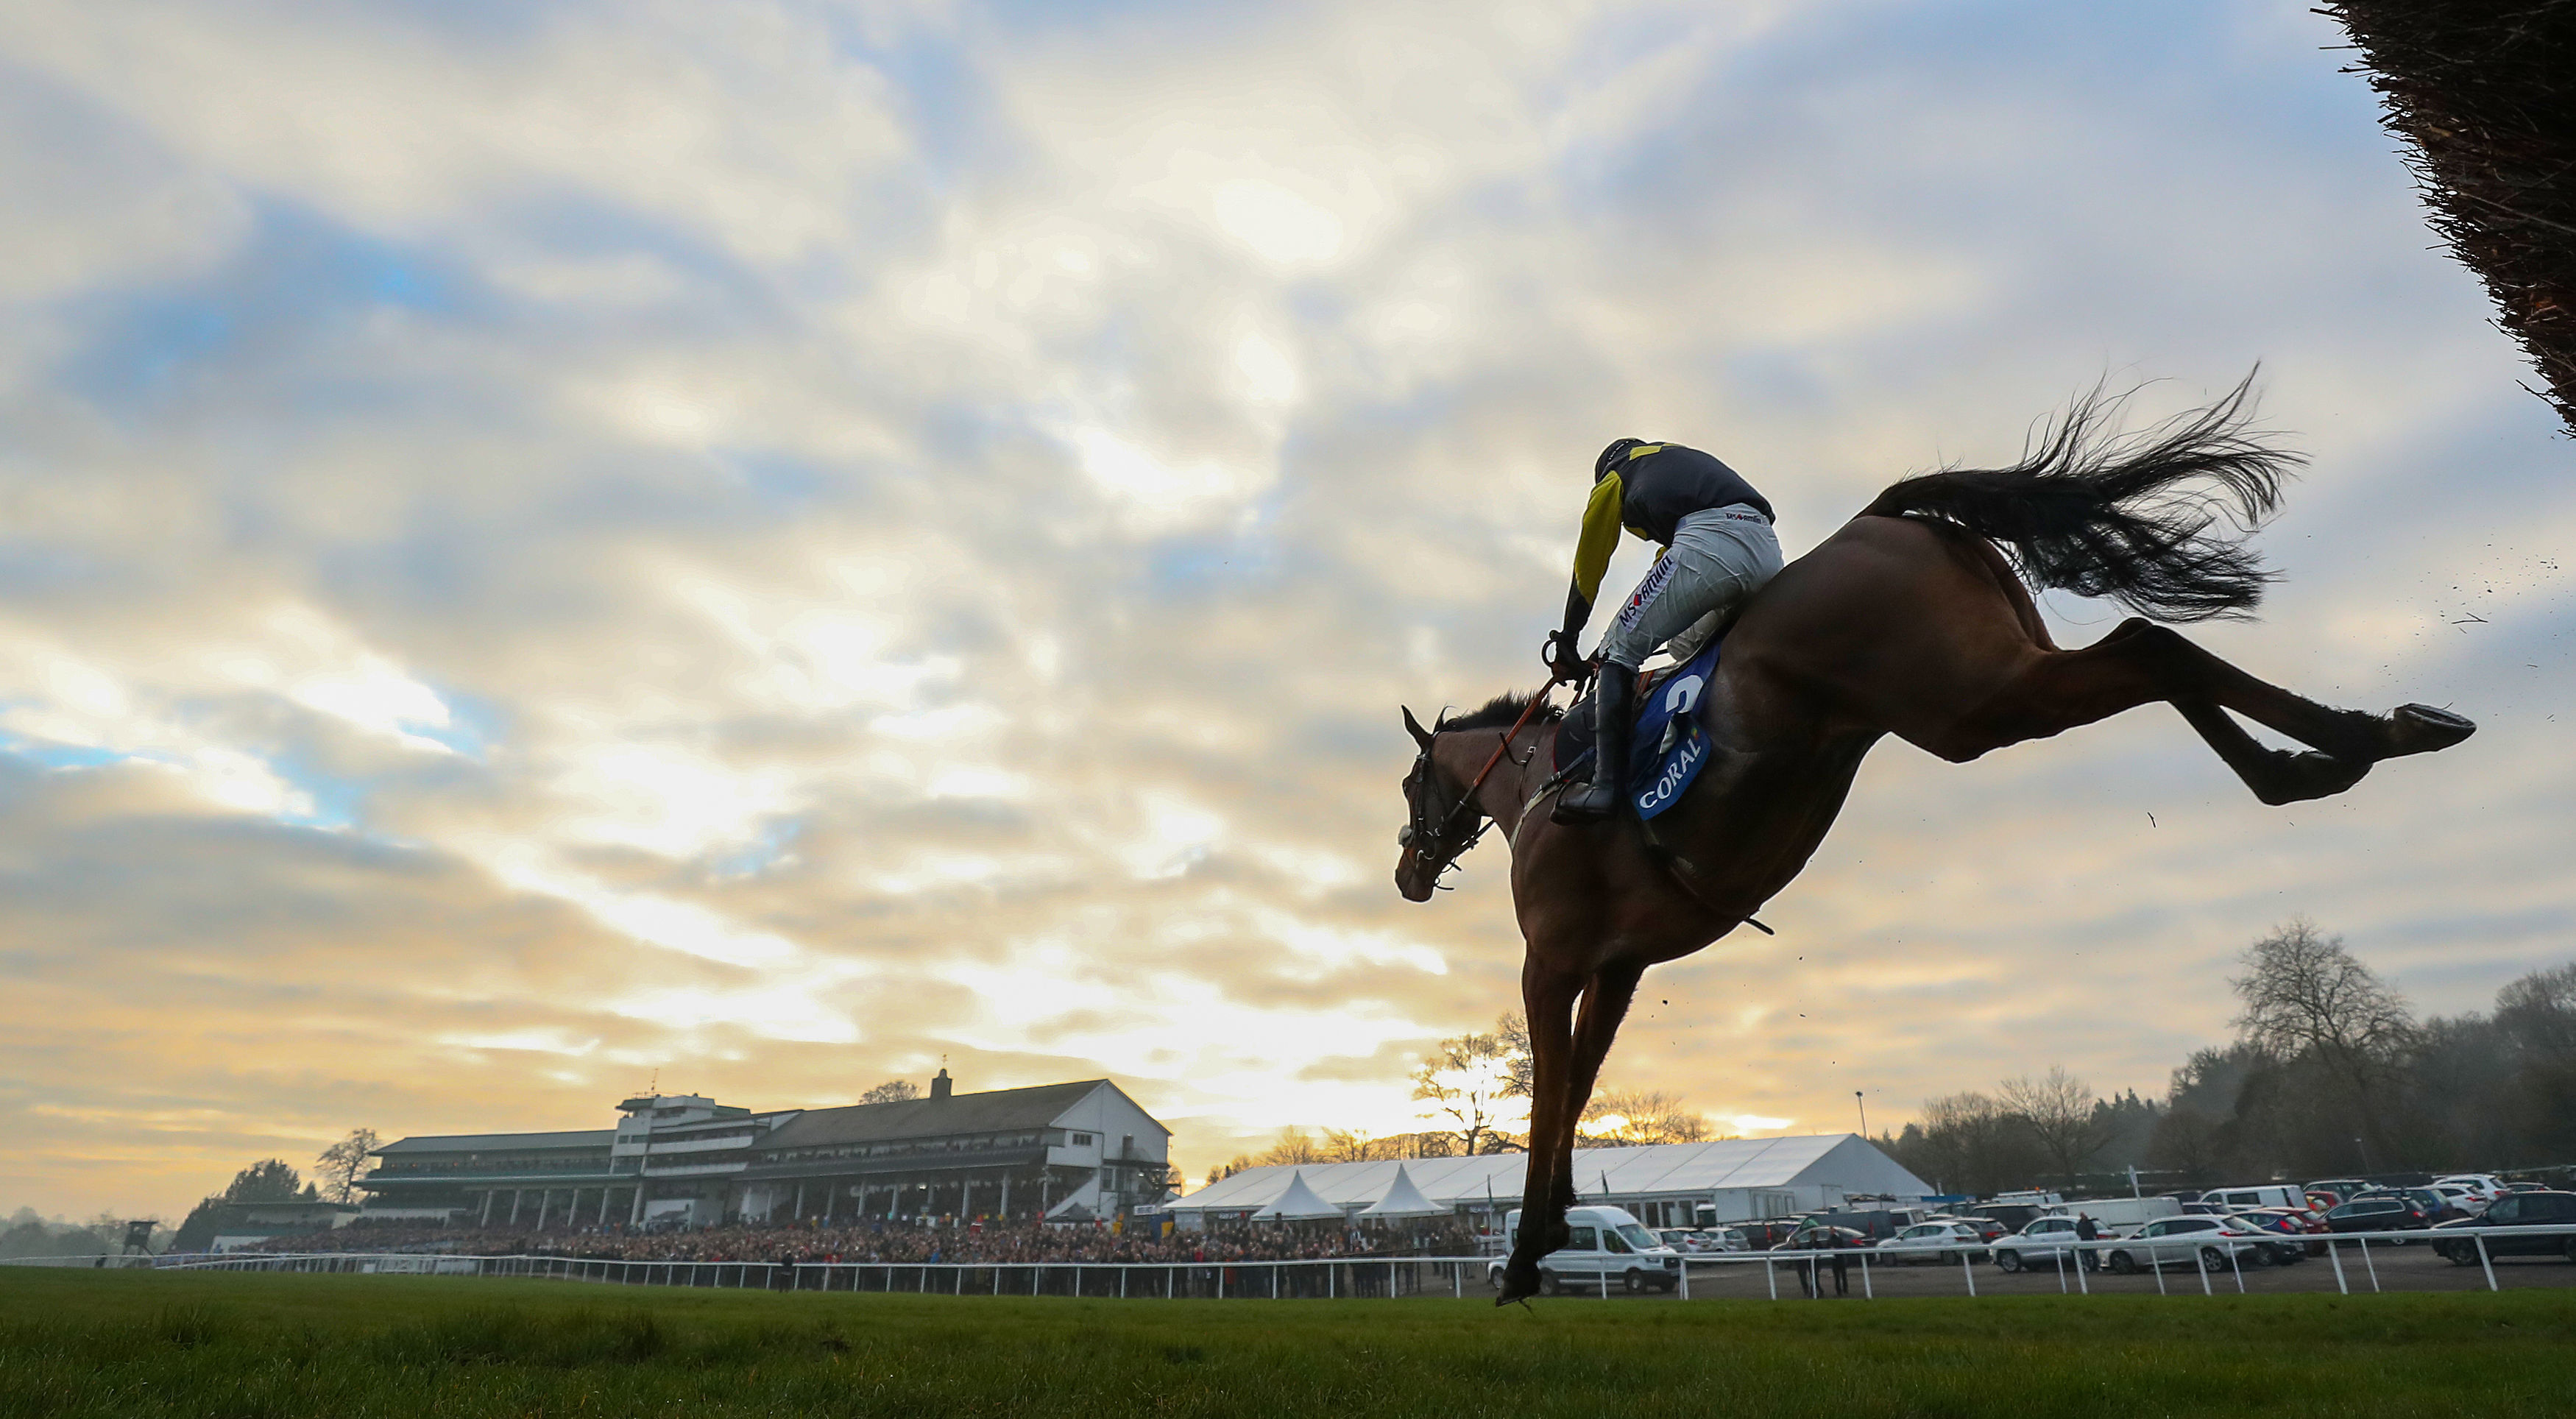 Elegant Escape and Tom O'Brien soared to victory at Chepstow